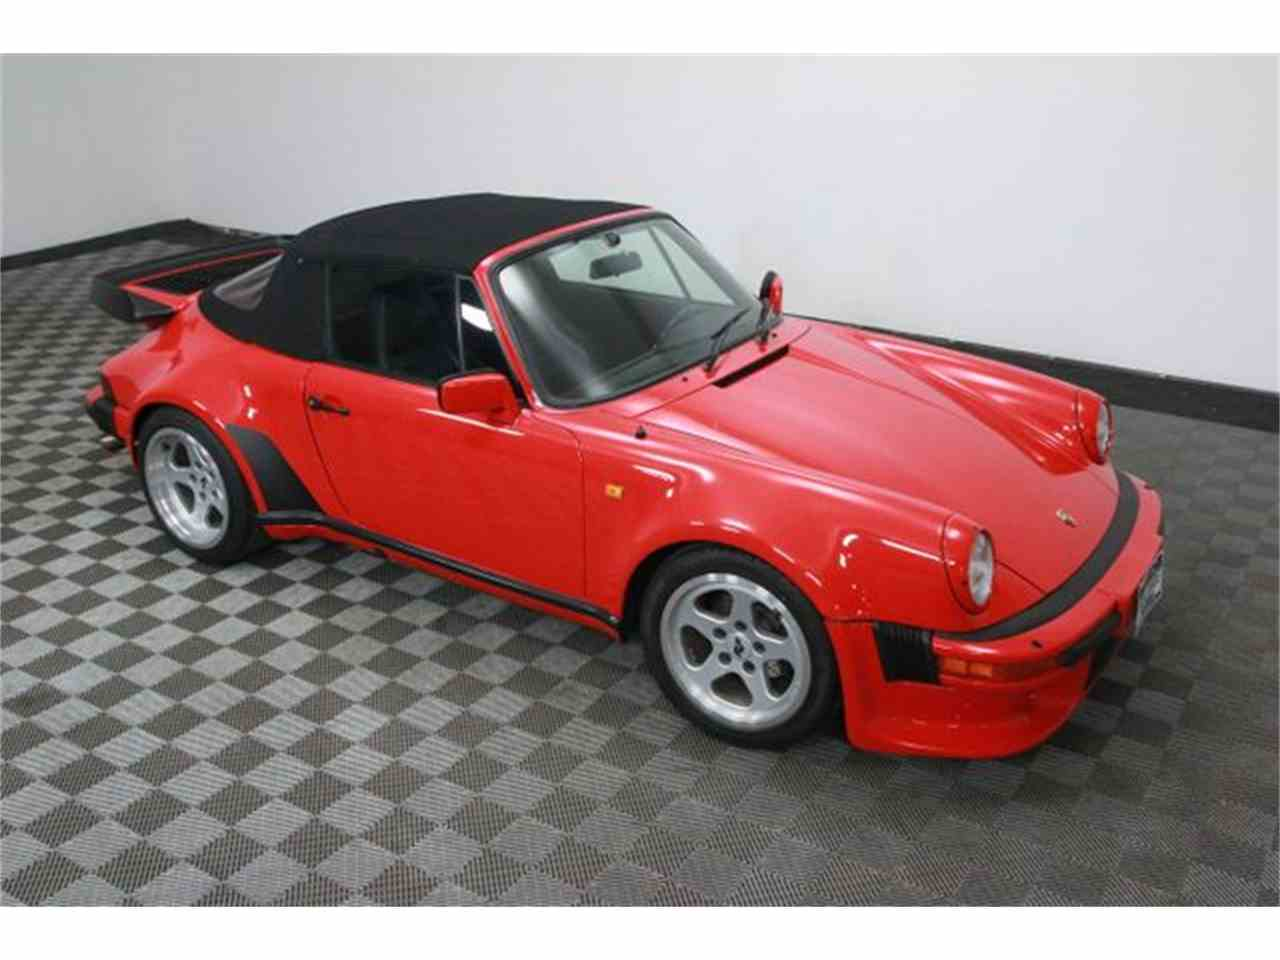 Large Picture of '84 Porsche 911 located in Denver  Colorado - $69,900.00 Offered by Worldwide Vintage Autos - JMG1